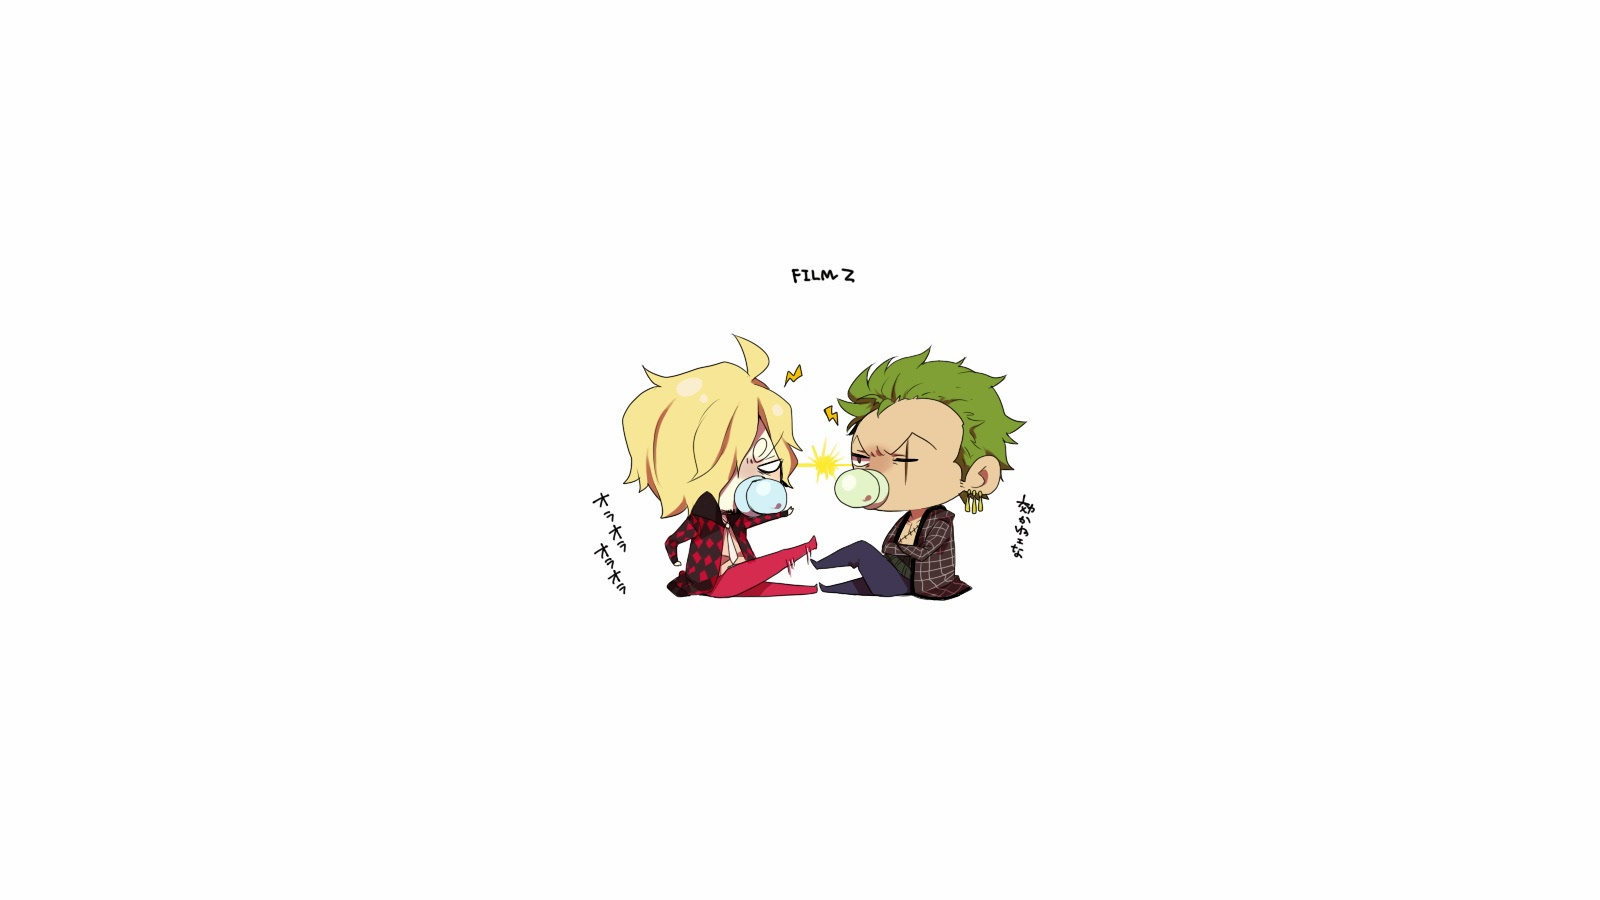 zoro and sanji cute chibi one piece anime hd wallpaper 1600x900 2t 1600x900